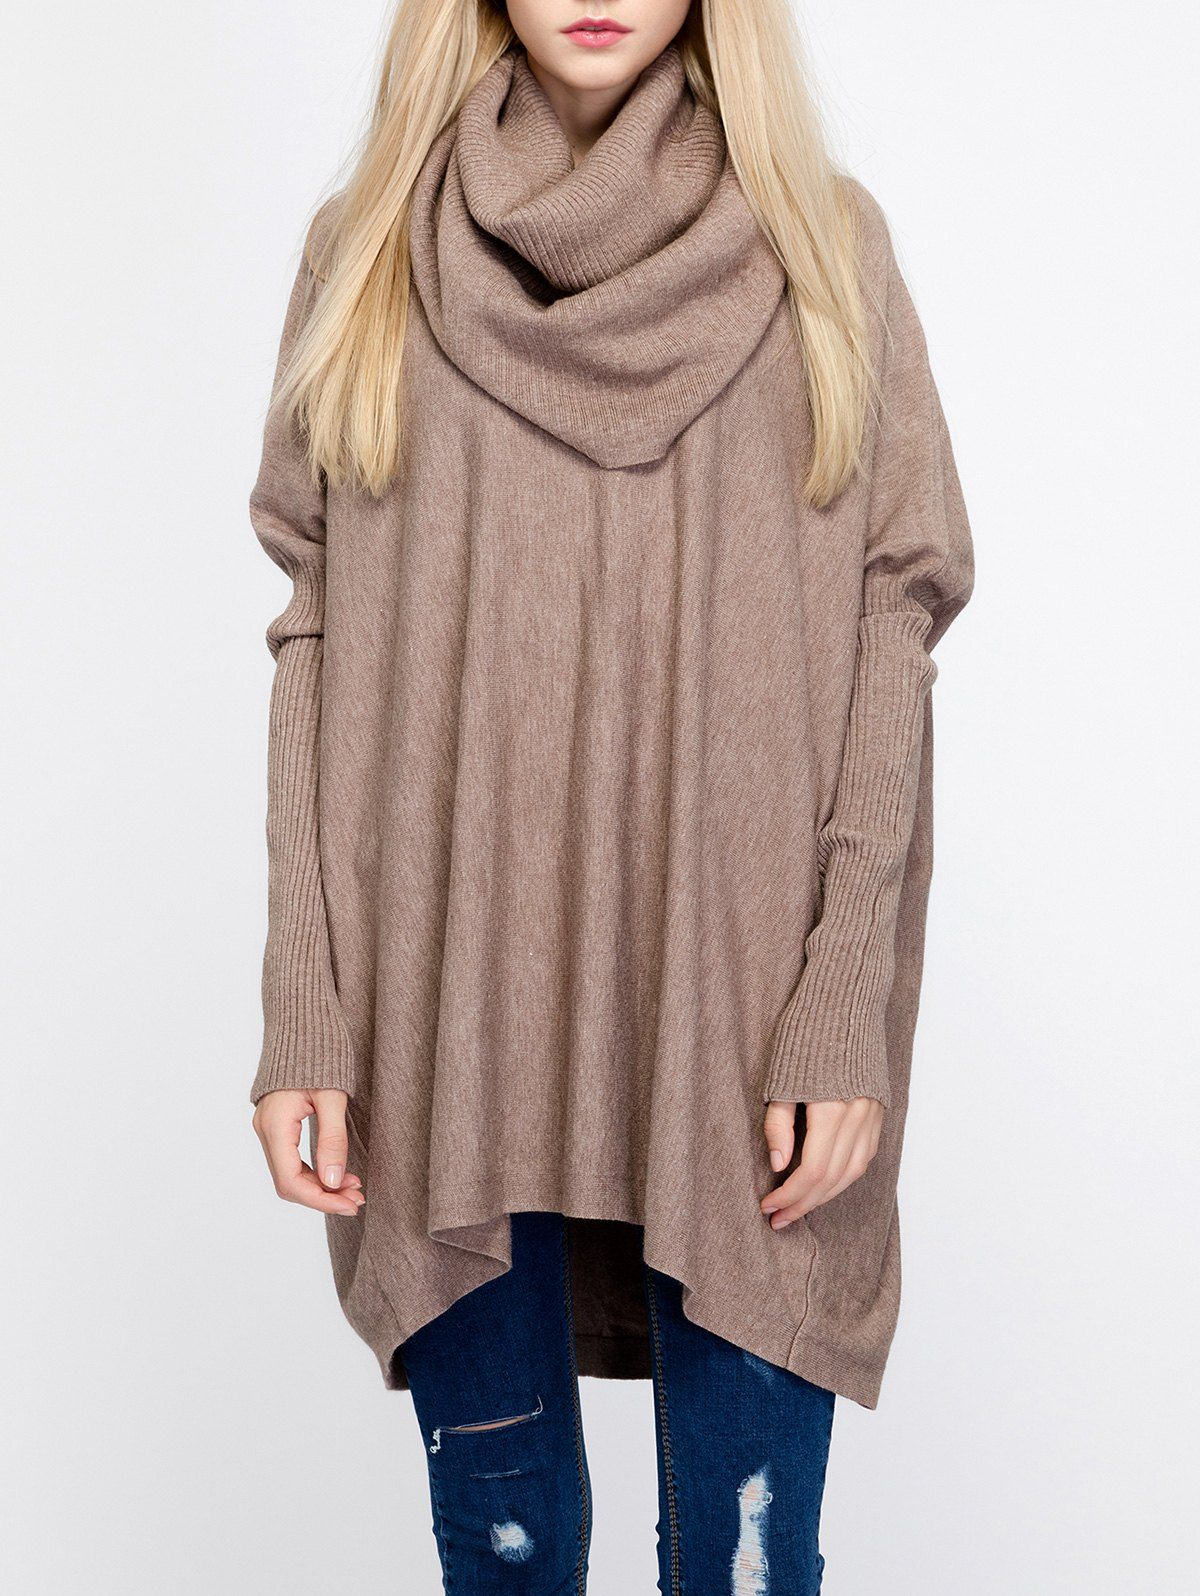 Oversized Turtleneck Tunic Ribbed Sweater | Shops, Keep calm and ...